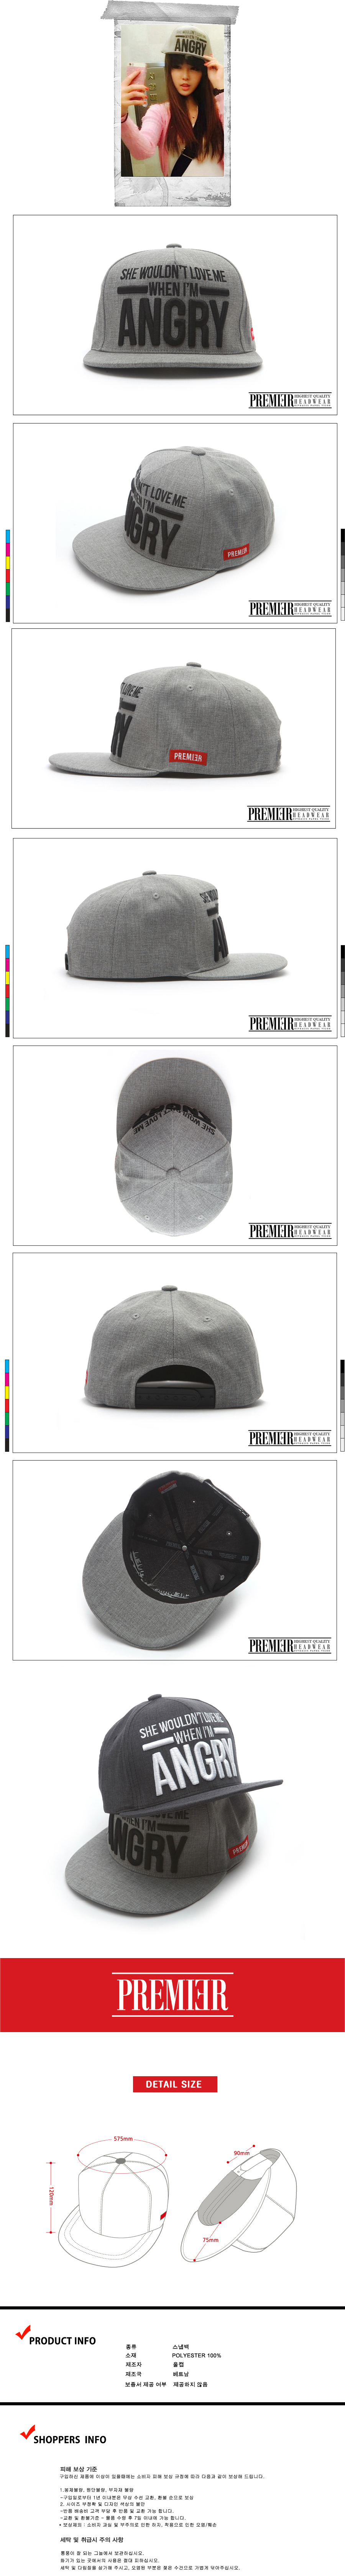 [ PREMIER ] [Premier] Snapback Angry Light  Grey